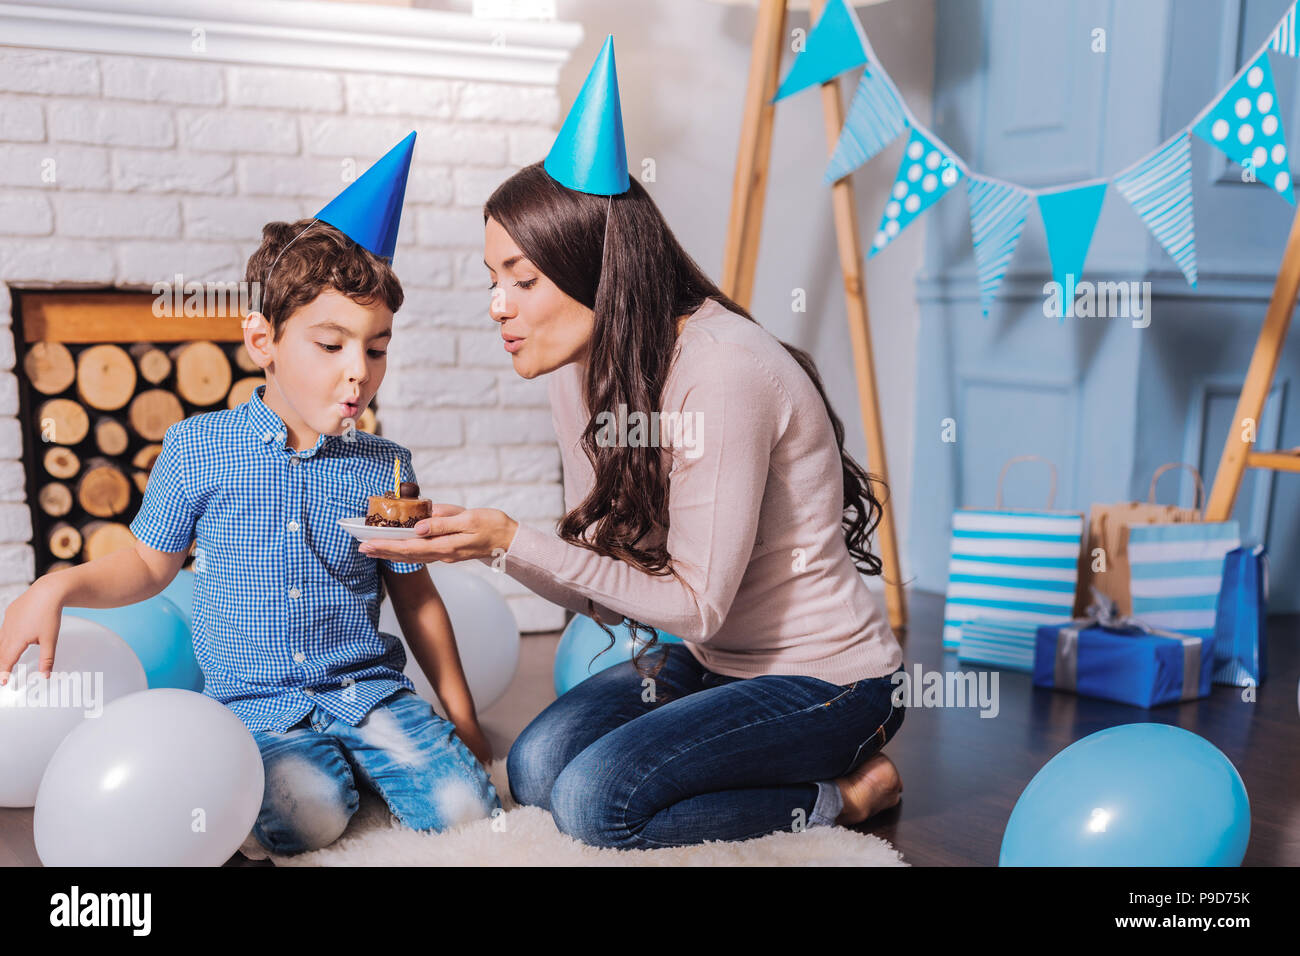 Attentive female person holding plate with cake - Stock Image